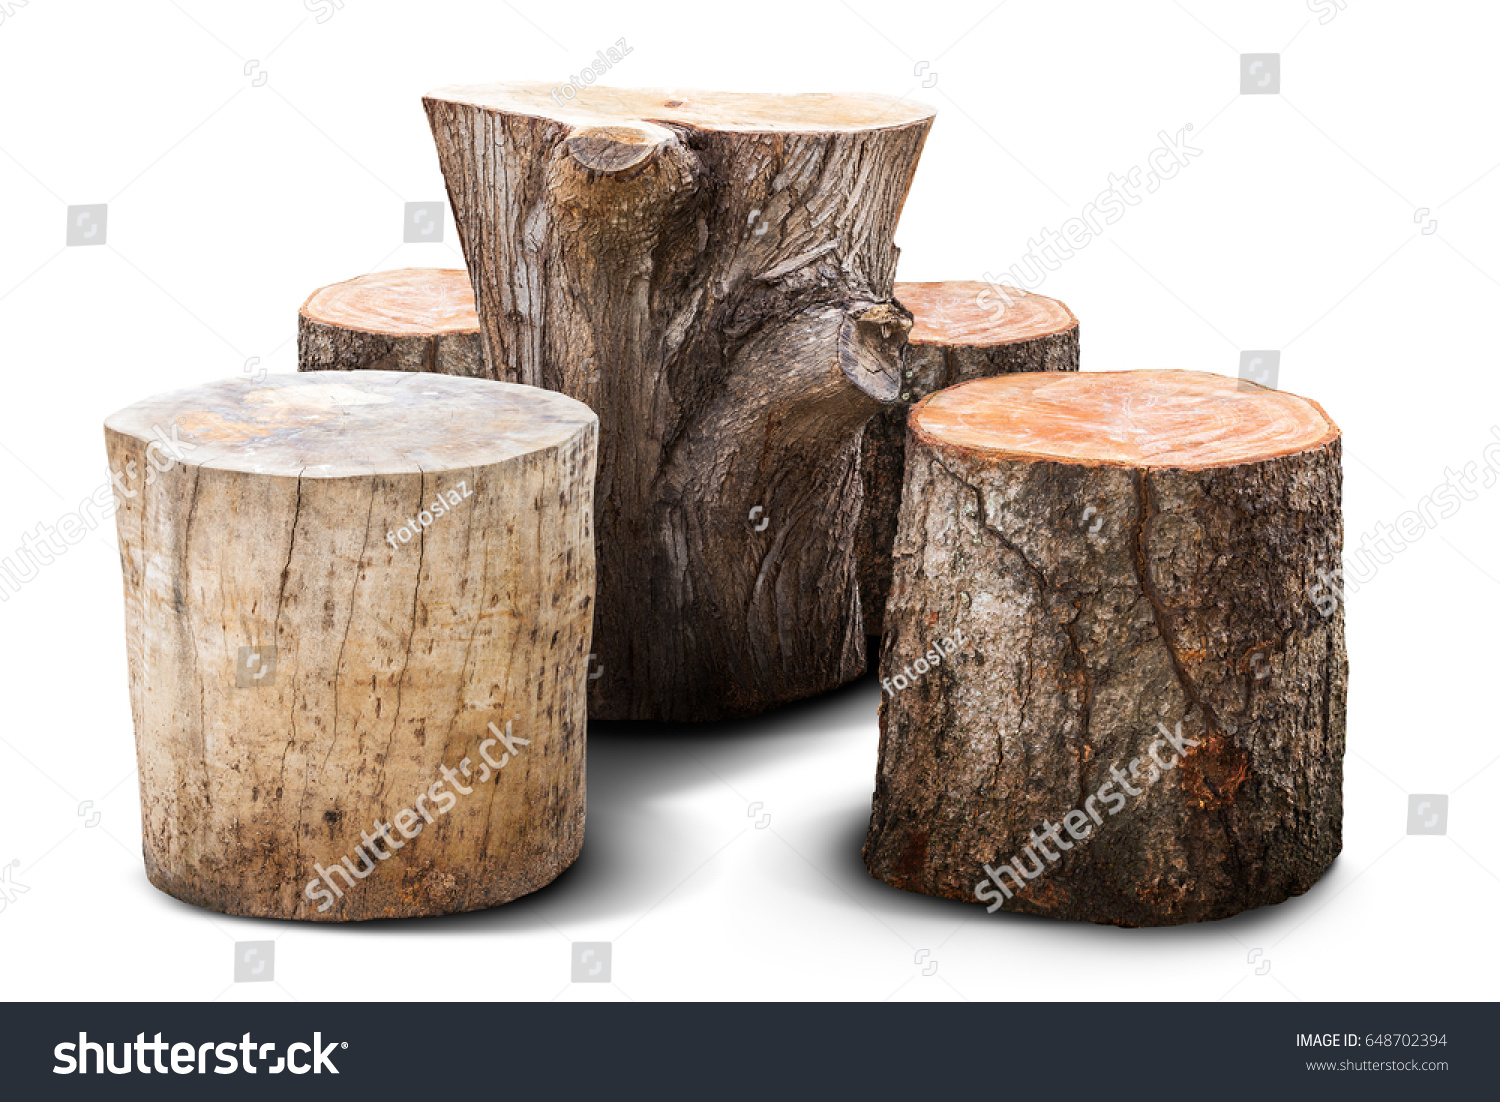 natural chair table garden furniture mad stock photo edit now rh shutterstock com log wood chips longwood christmas trail